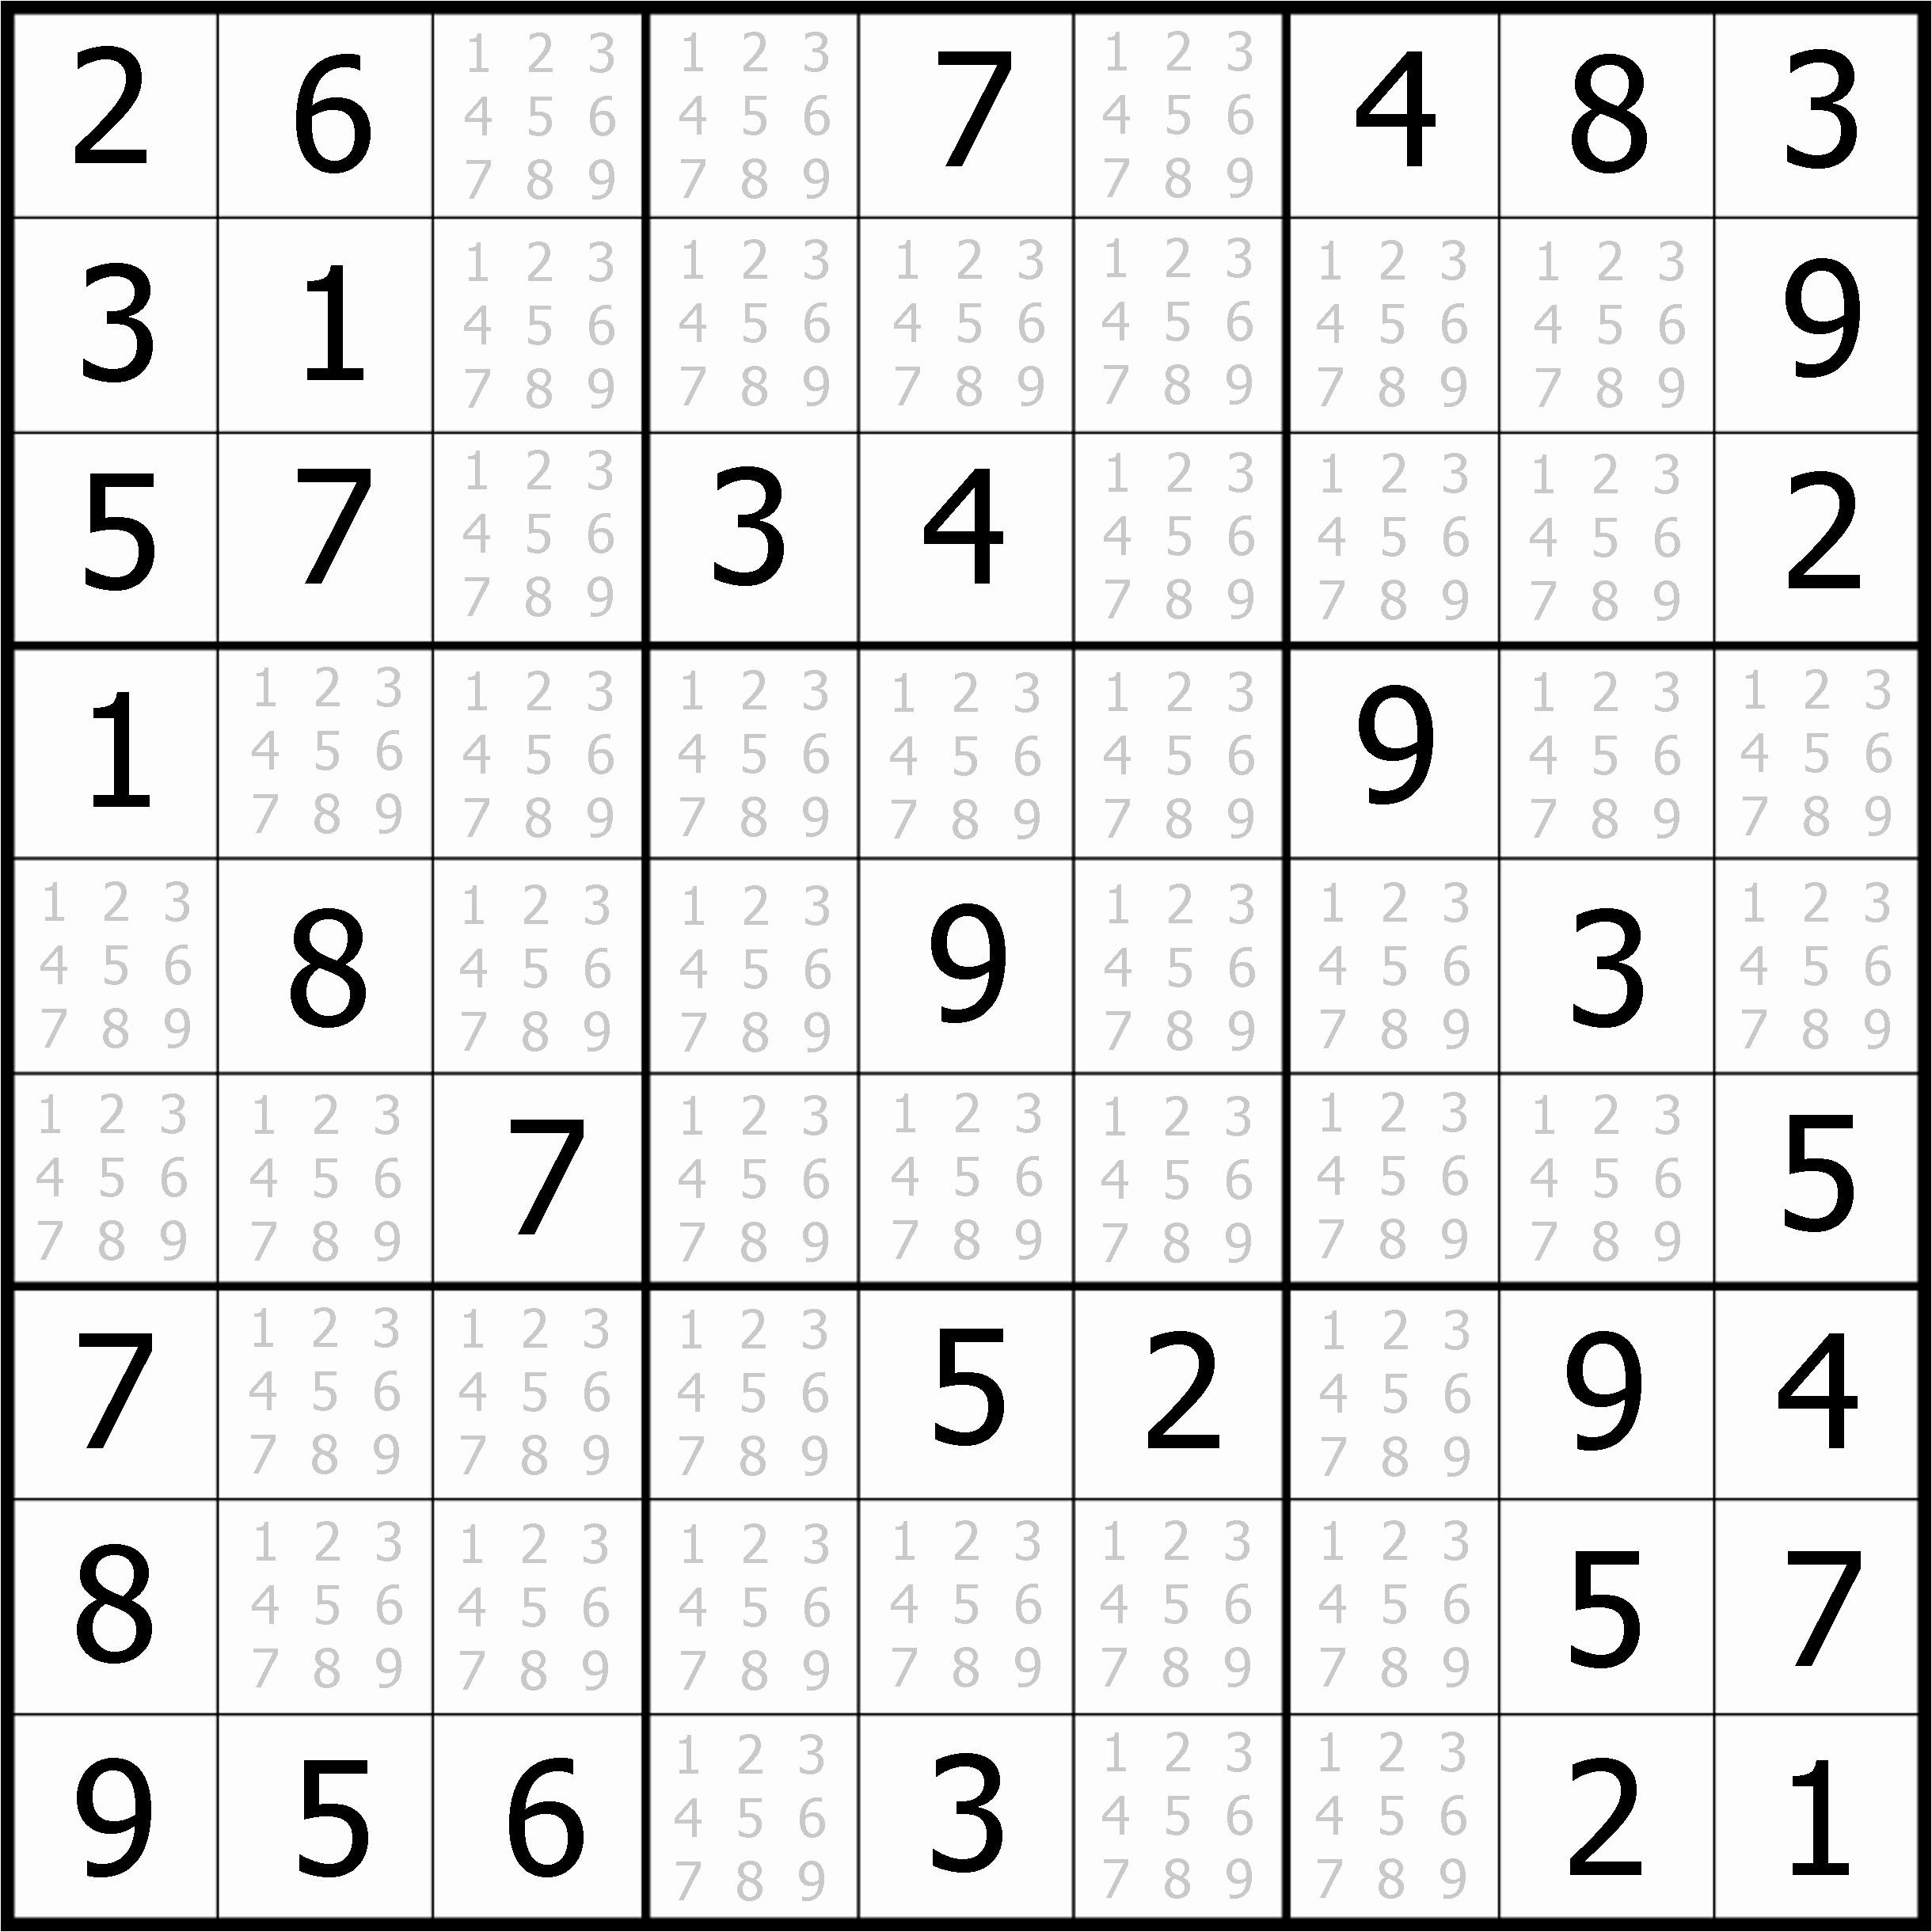 Easy Sudoku Puzzles To Print Free Example Easy Sudoku For You - Printable Sudoku Puzzles For Beginners